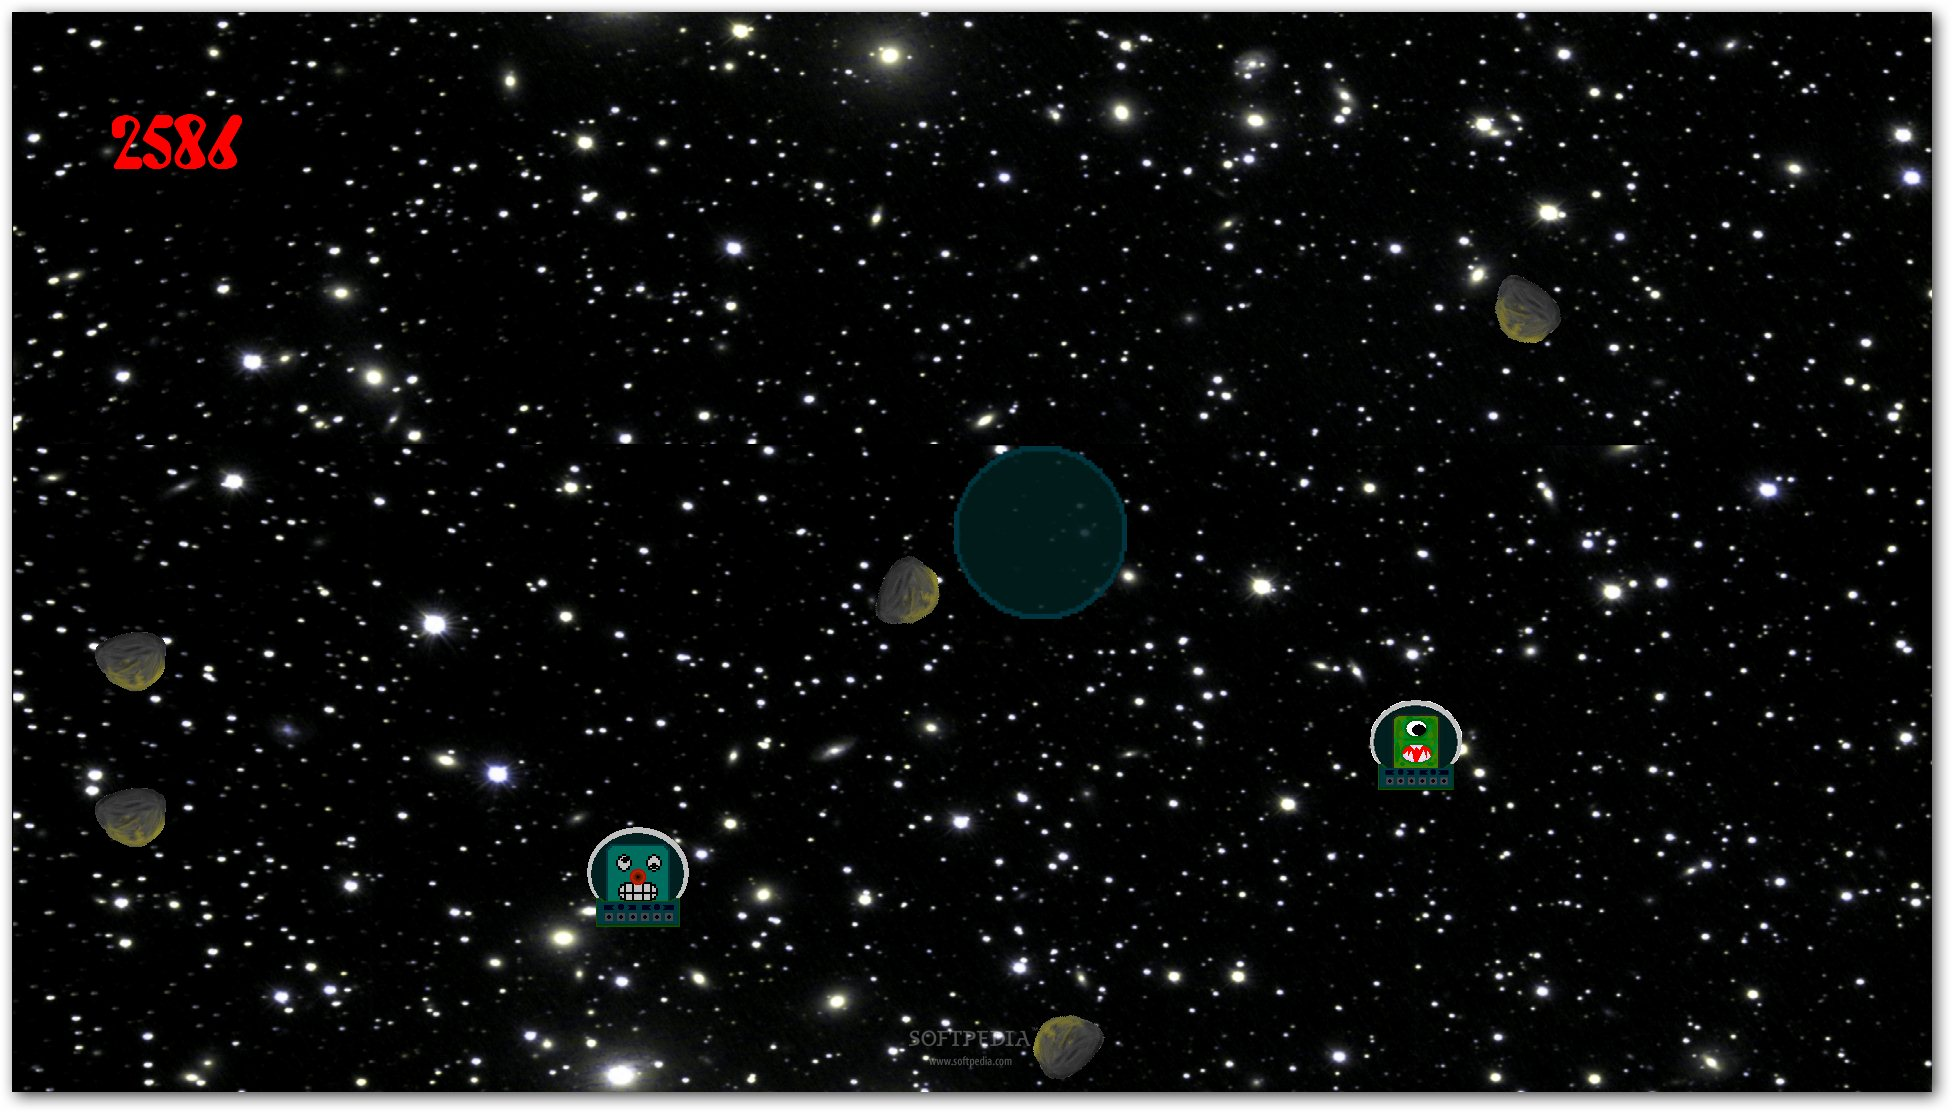 Crazyslimes - Space Escape screenshot 3